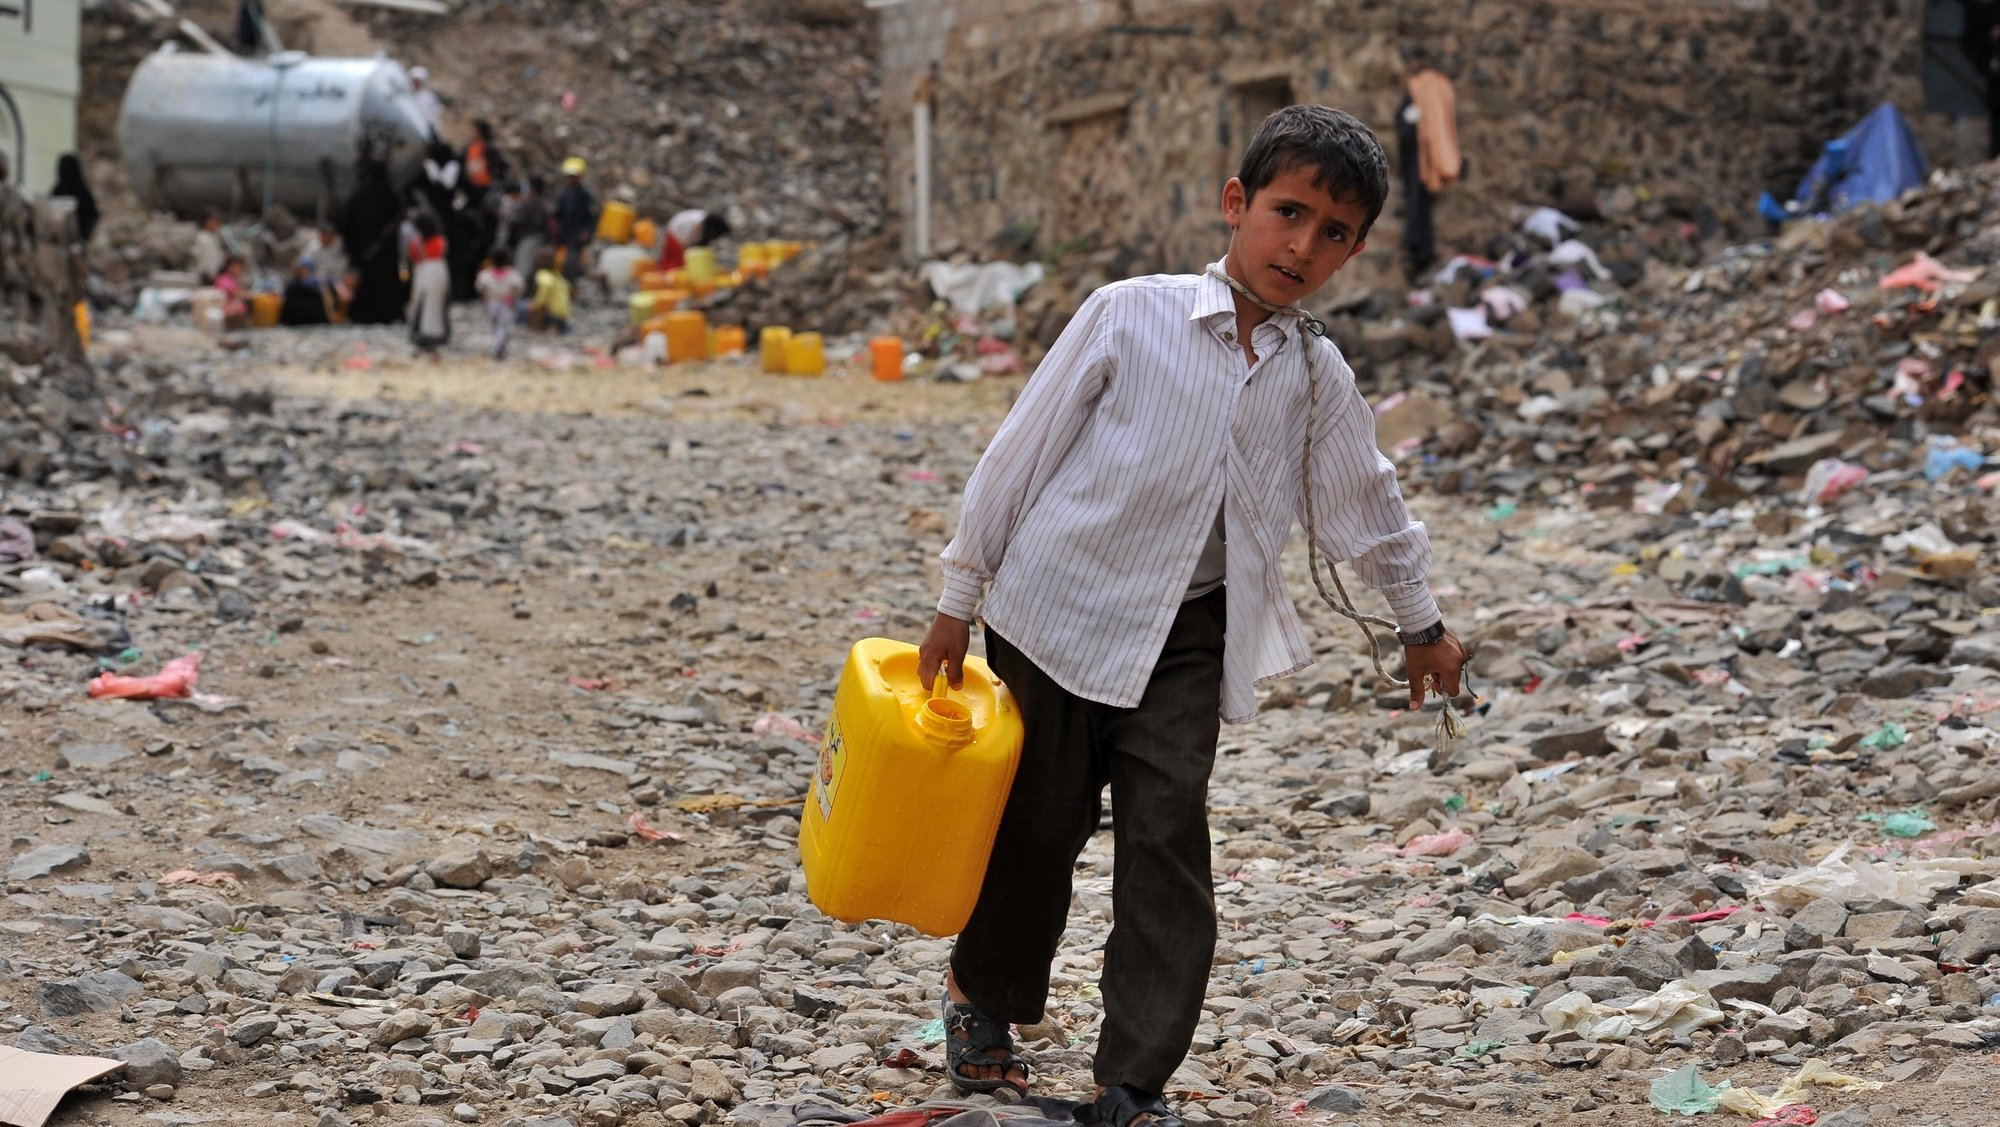 epa03792656 A Yemeni boy holds a jerry can after filling with water from a philanthropist-provided tap at a slum in Sana'a, Yemen, 18 July 2013. Reports state the United Nations has appealed to the international community to provide 702 million US dollar to help 7.7 million of the most vulnerable Yemenis gain access to food, clean water, health care and other vital services. Half of Yemen's 24 million people are in need of assistance, as the impoverished Arab country is facing a worsening humanitarian situation during a political transitional period.  EPA/YAHYA ARHAB